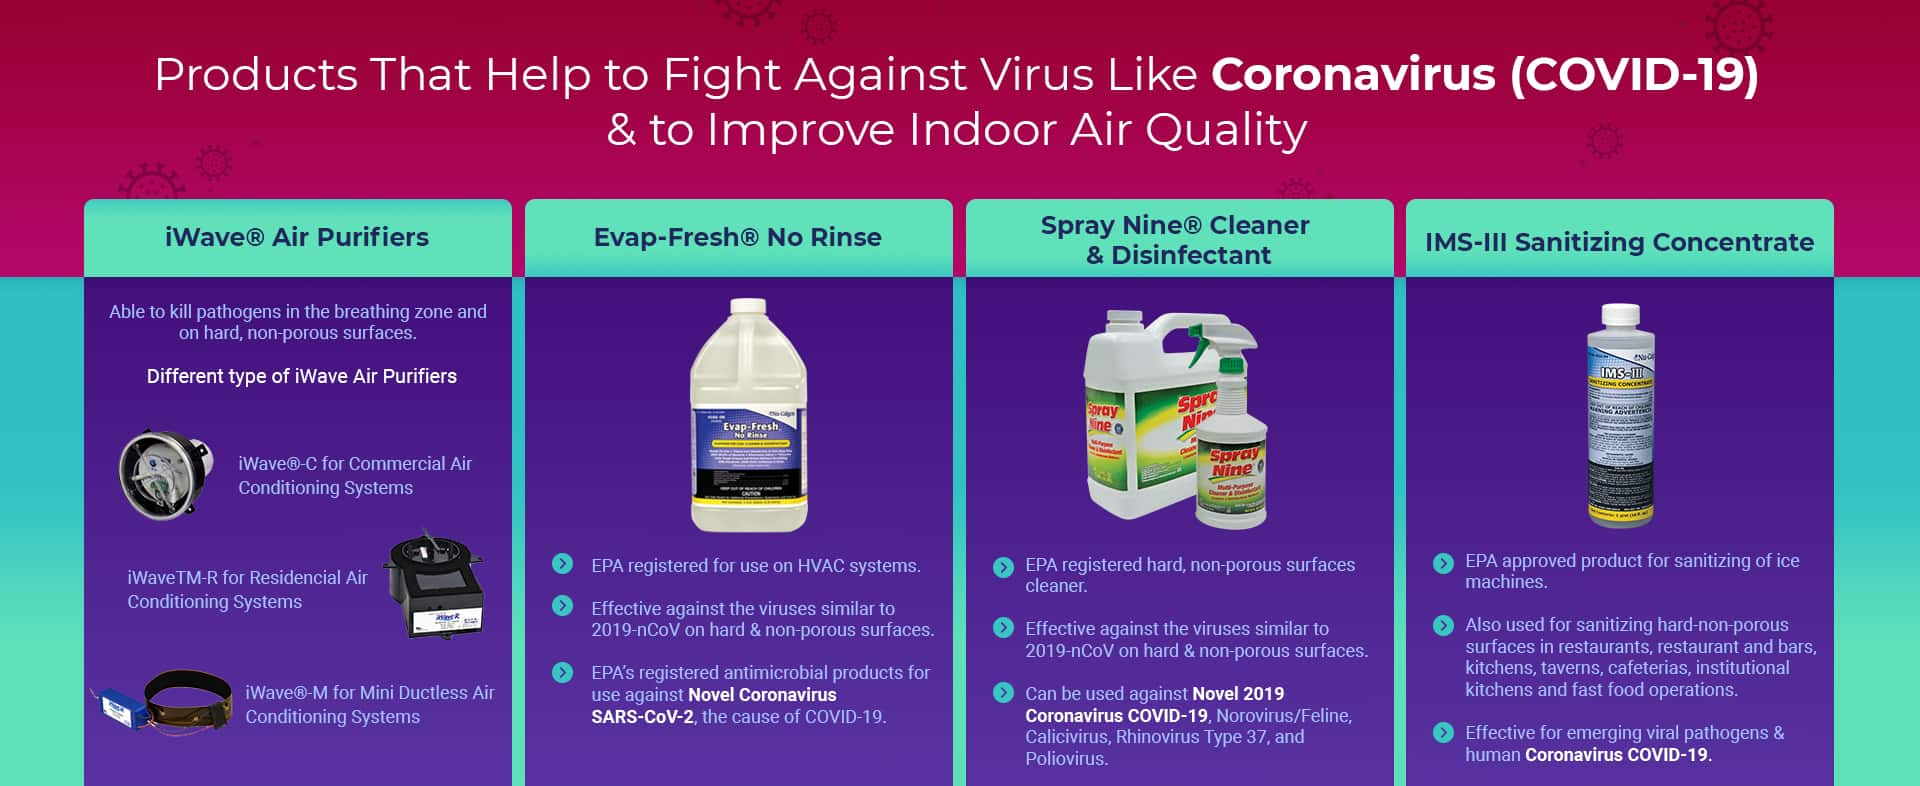 indoor air quality improvement products